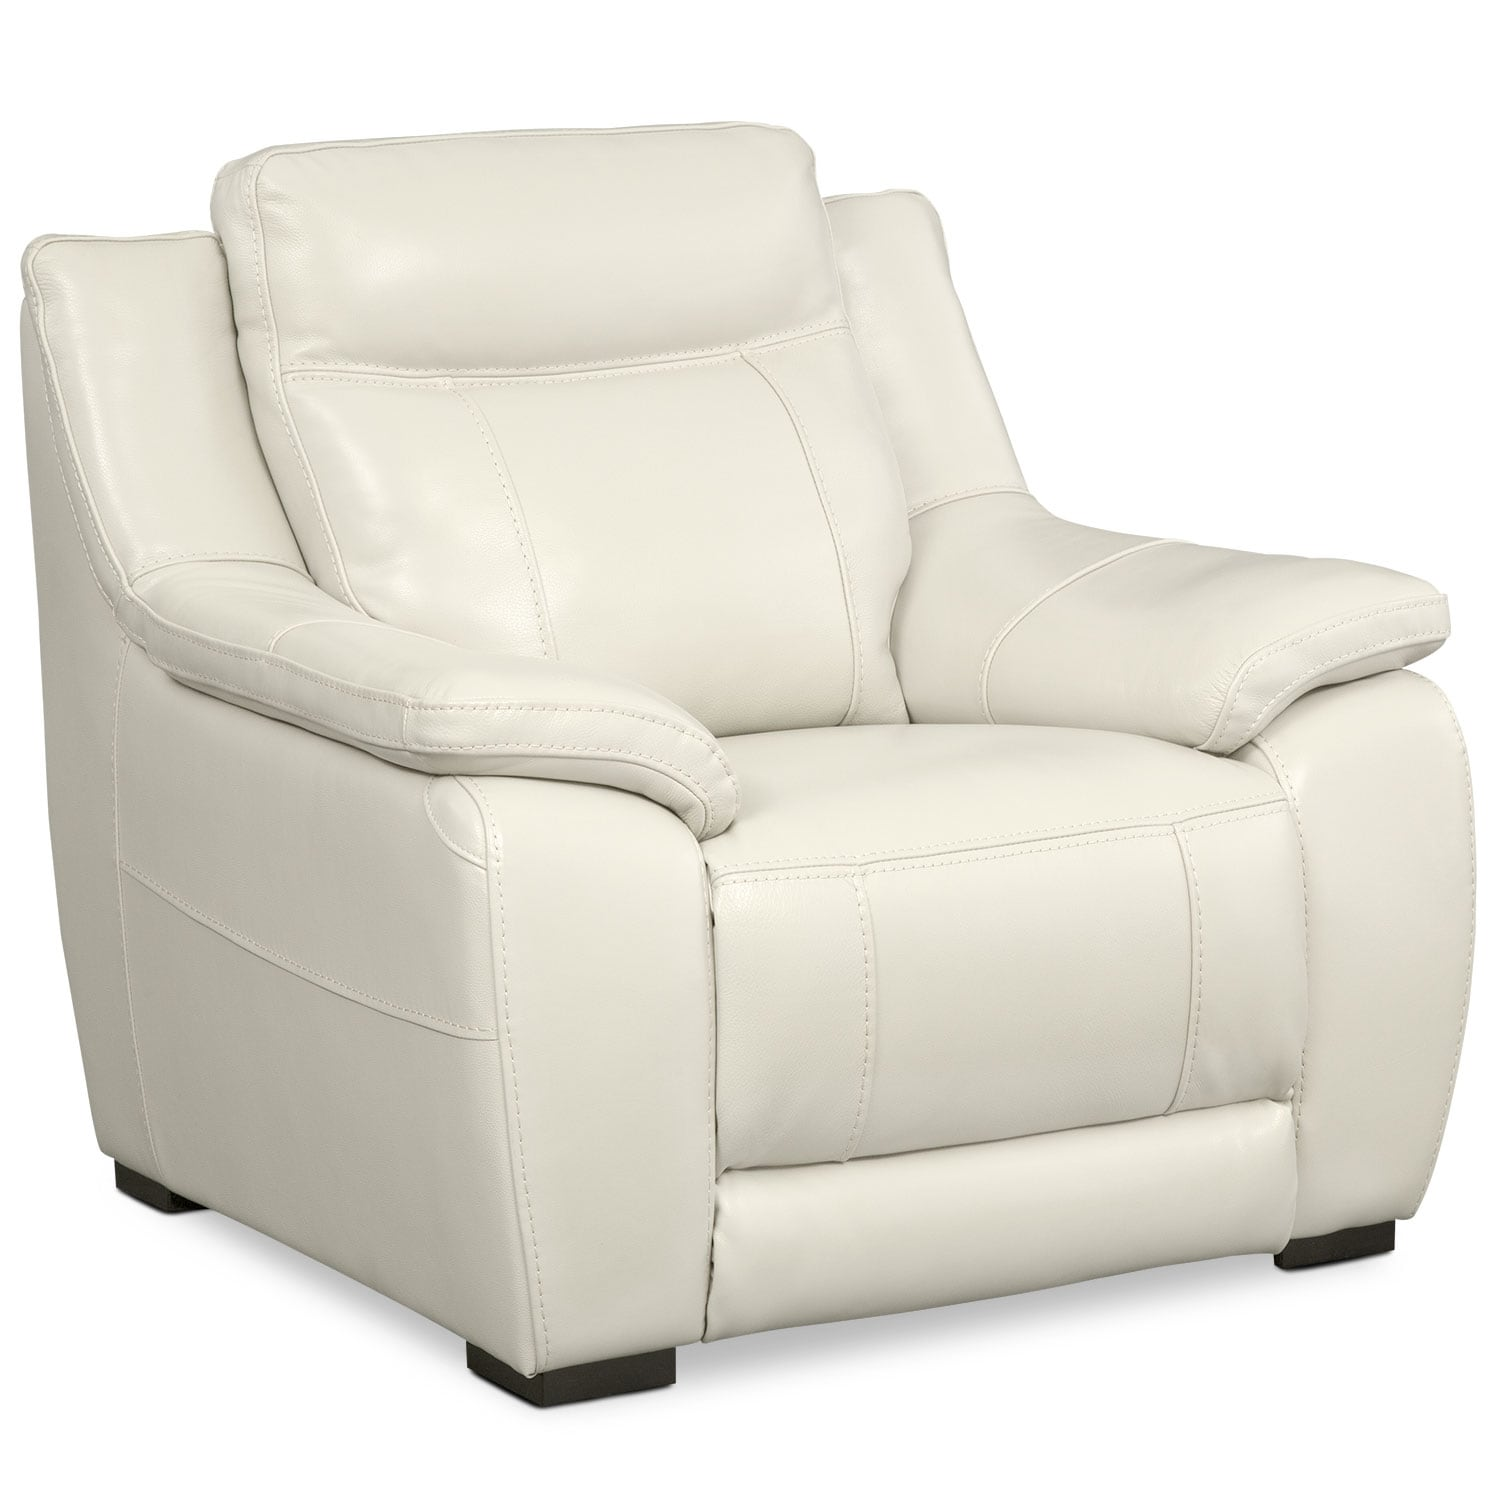 Living Room Furniture - Lido Chair - Ivory